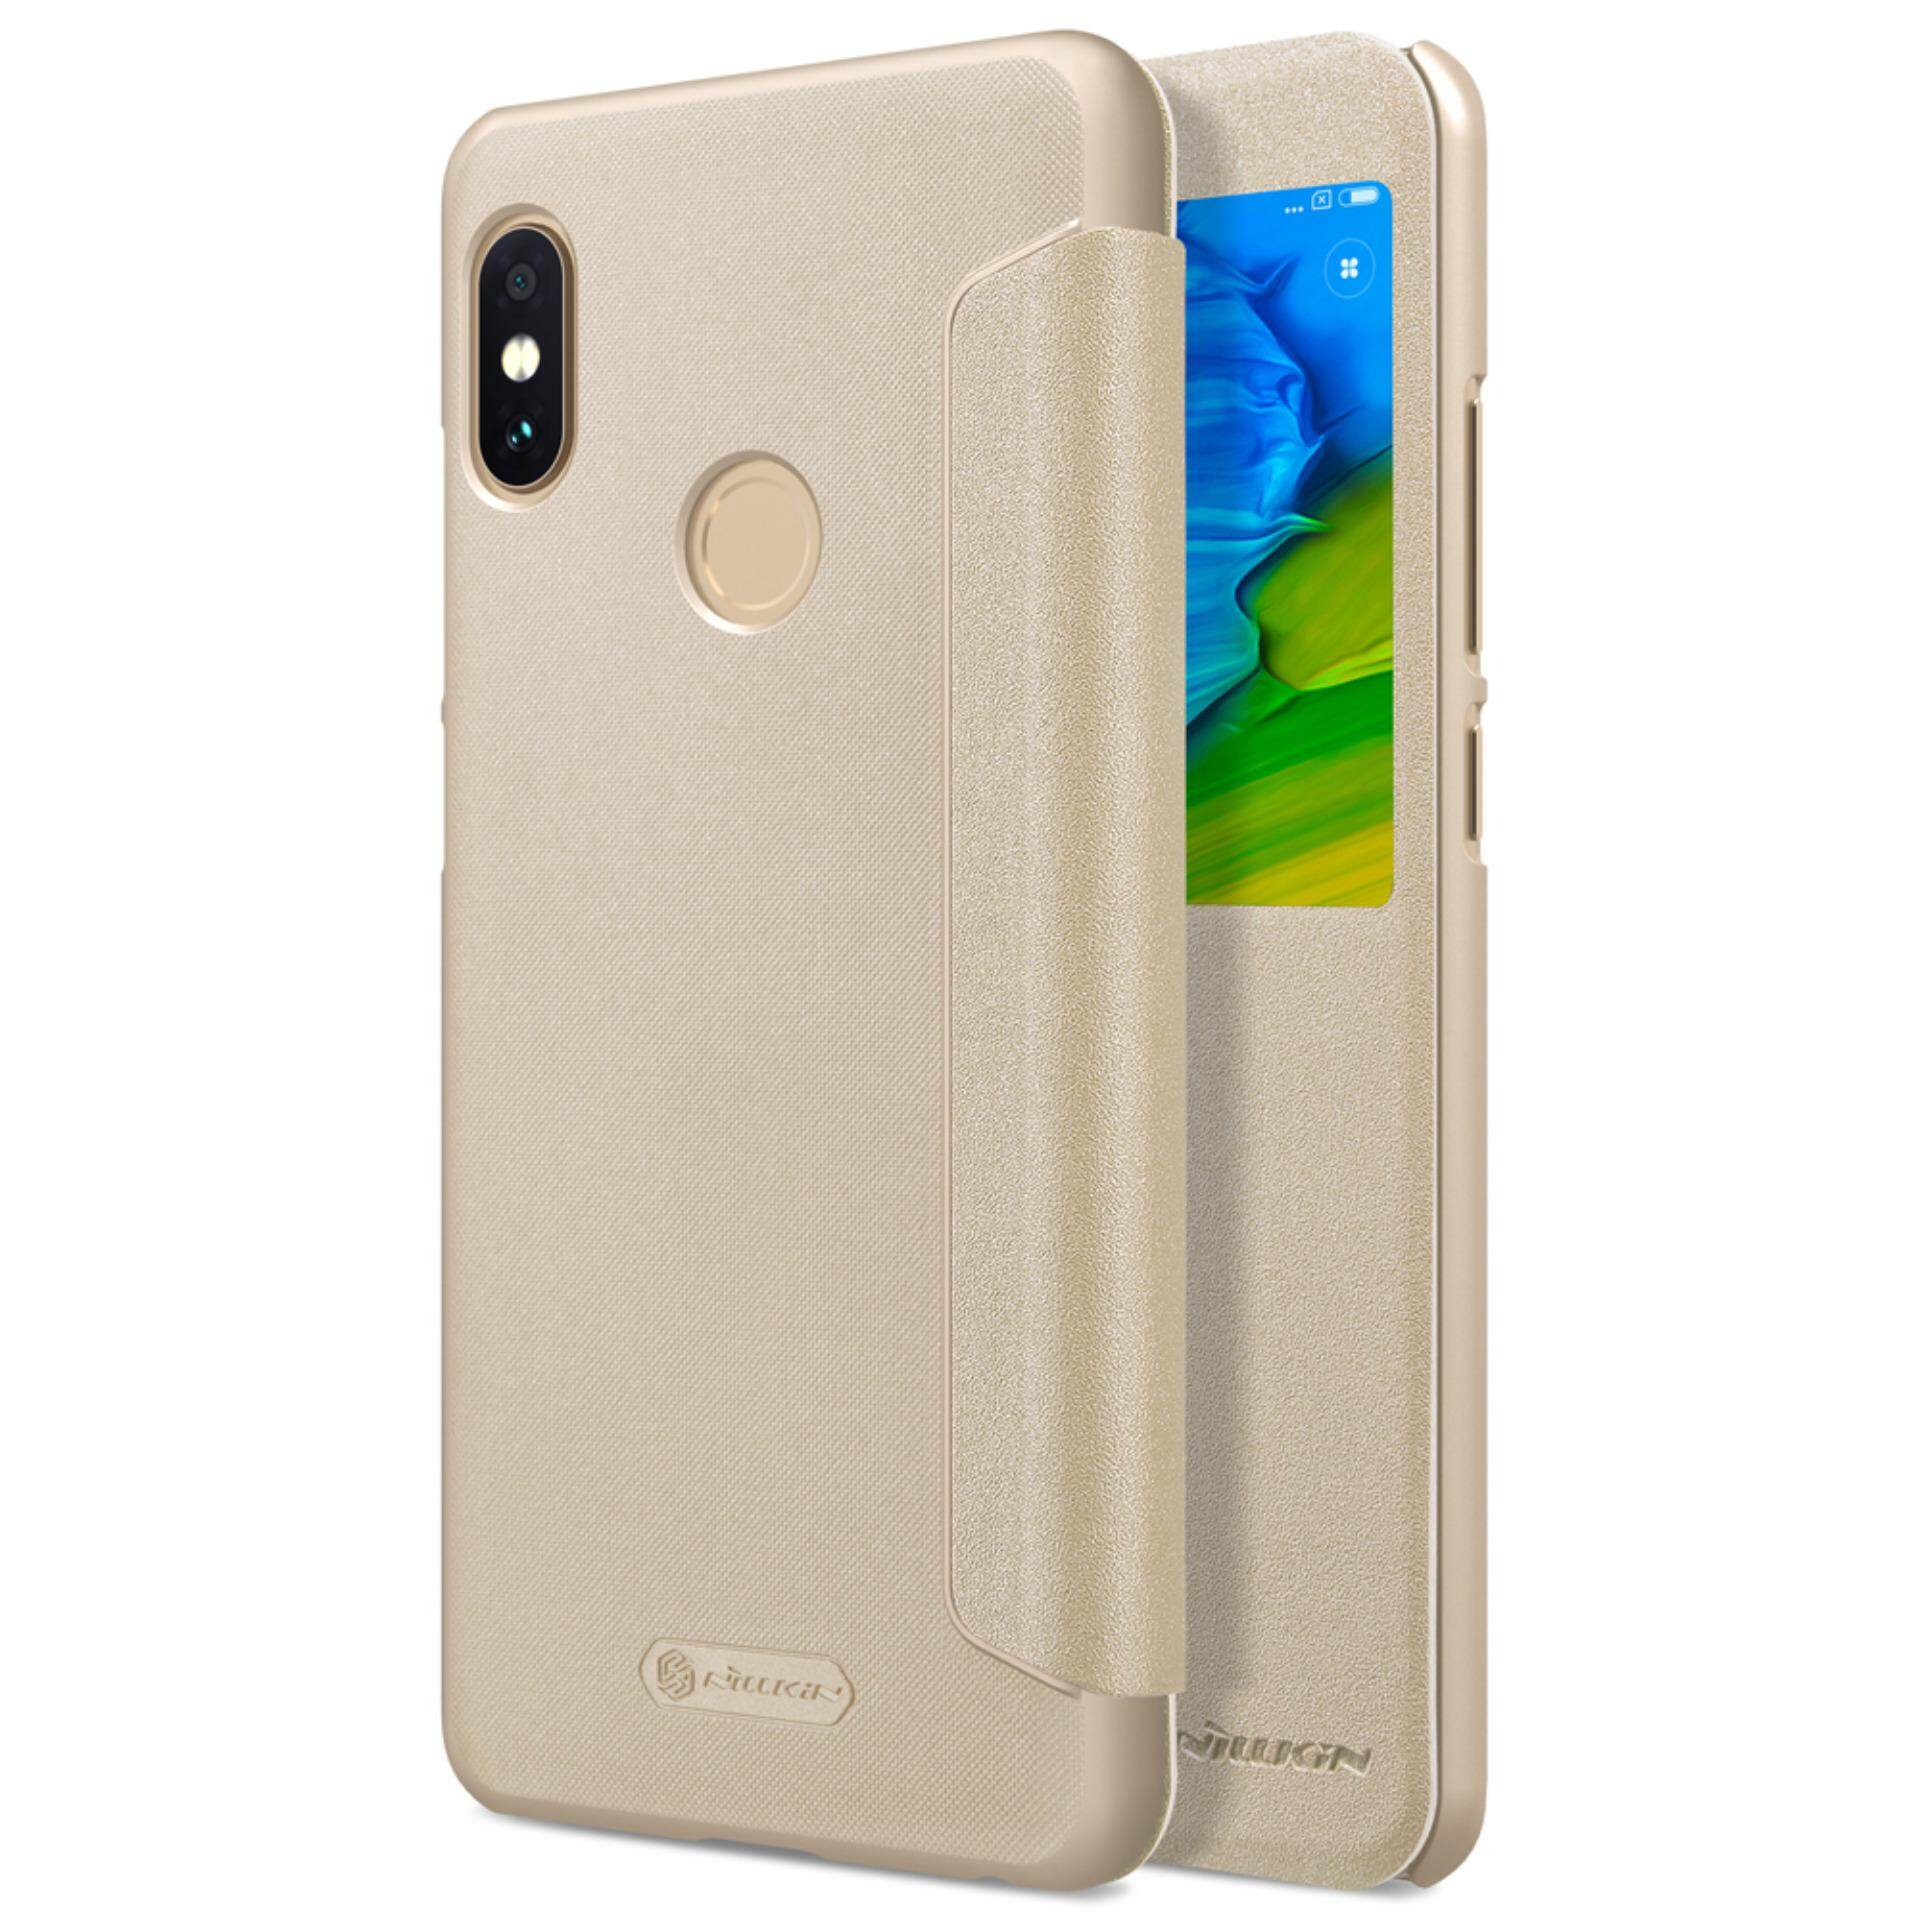 Best Rated Xiaomi Redmi Note 5 Pro Case Nillkin Sparkle Book Type Ultra Thin Smart View Window Wake Up Sleep Flip Up Pu Leather Case Protective Shell Slim Cover Phone Case Casing For Xiaomi Redmi Note 5 Pro Intl